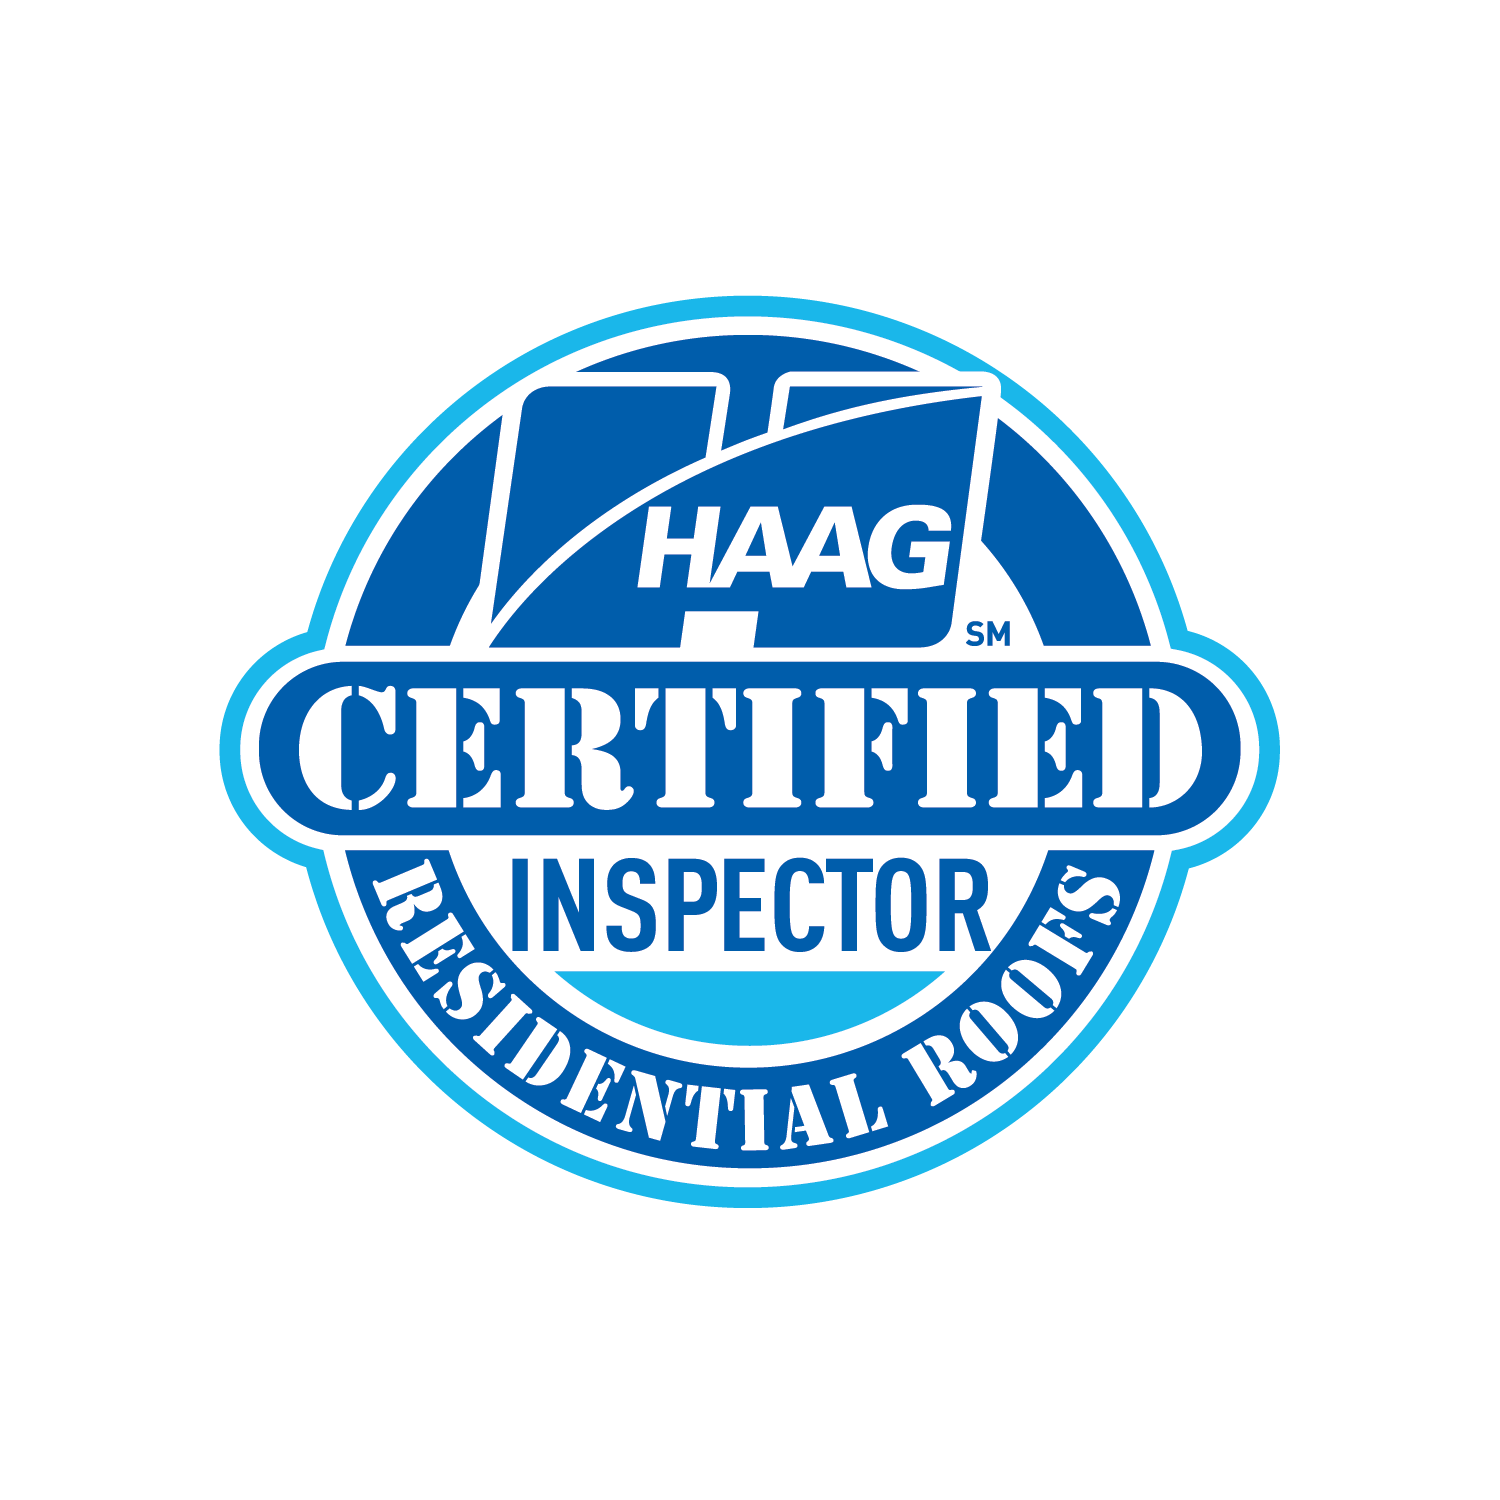 HAAG Certified Inspector - Residential Roofs